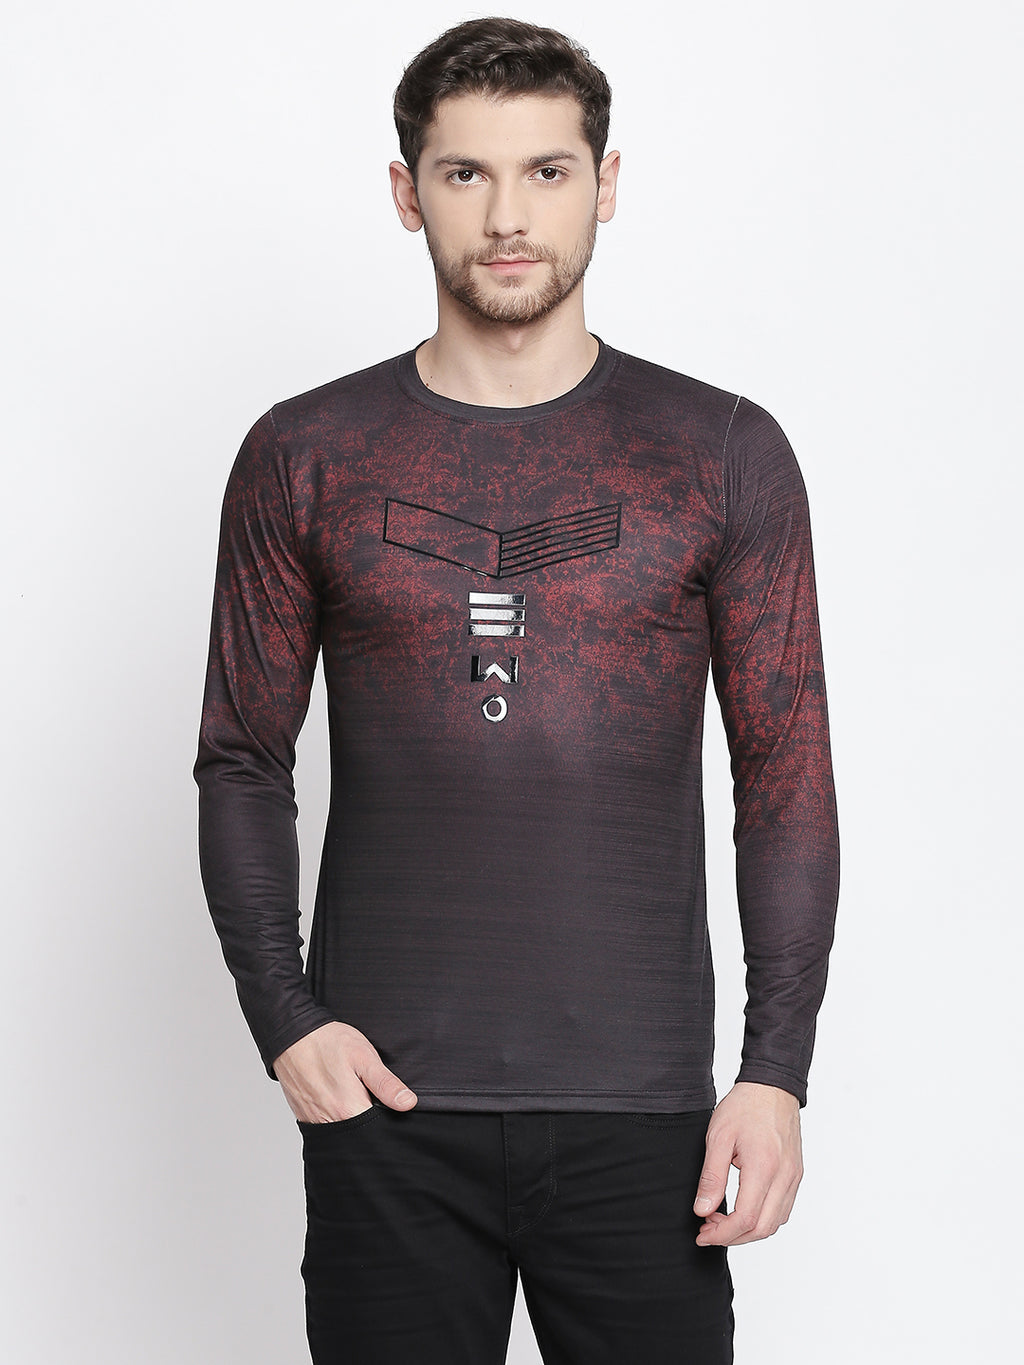 ZIDO Printed Men's T-Shirt 9363